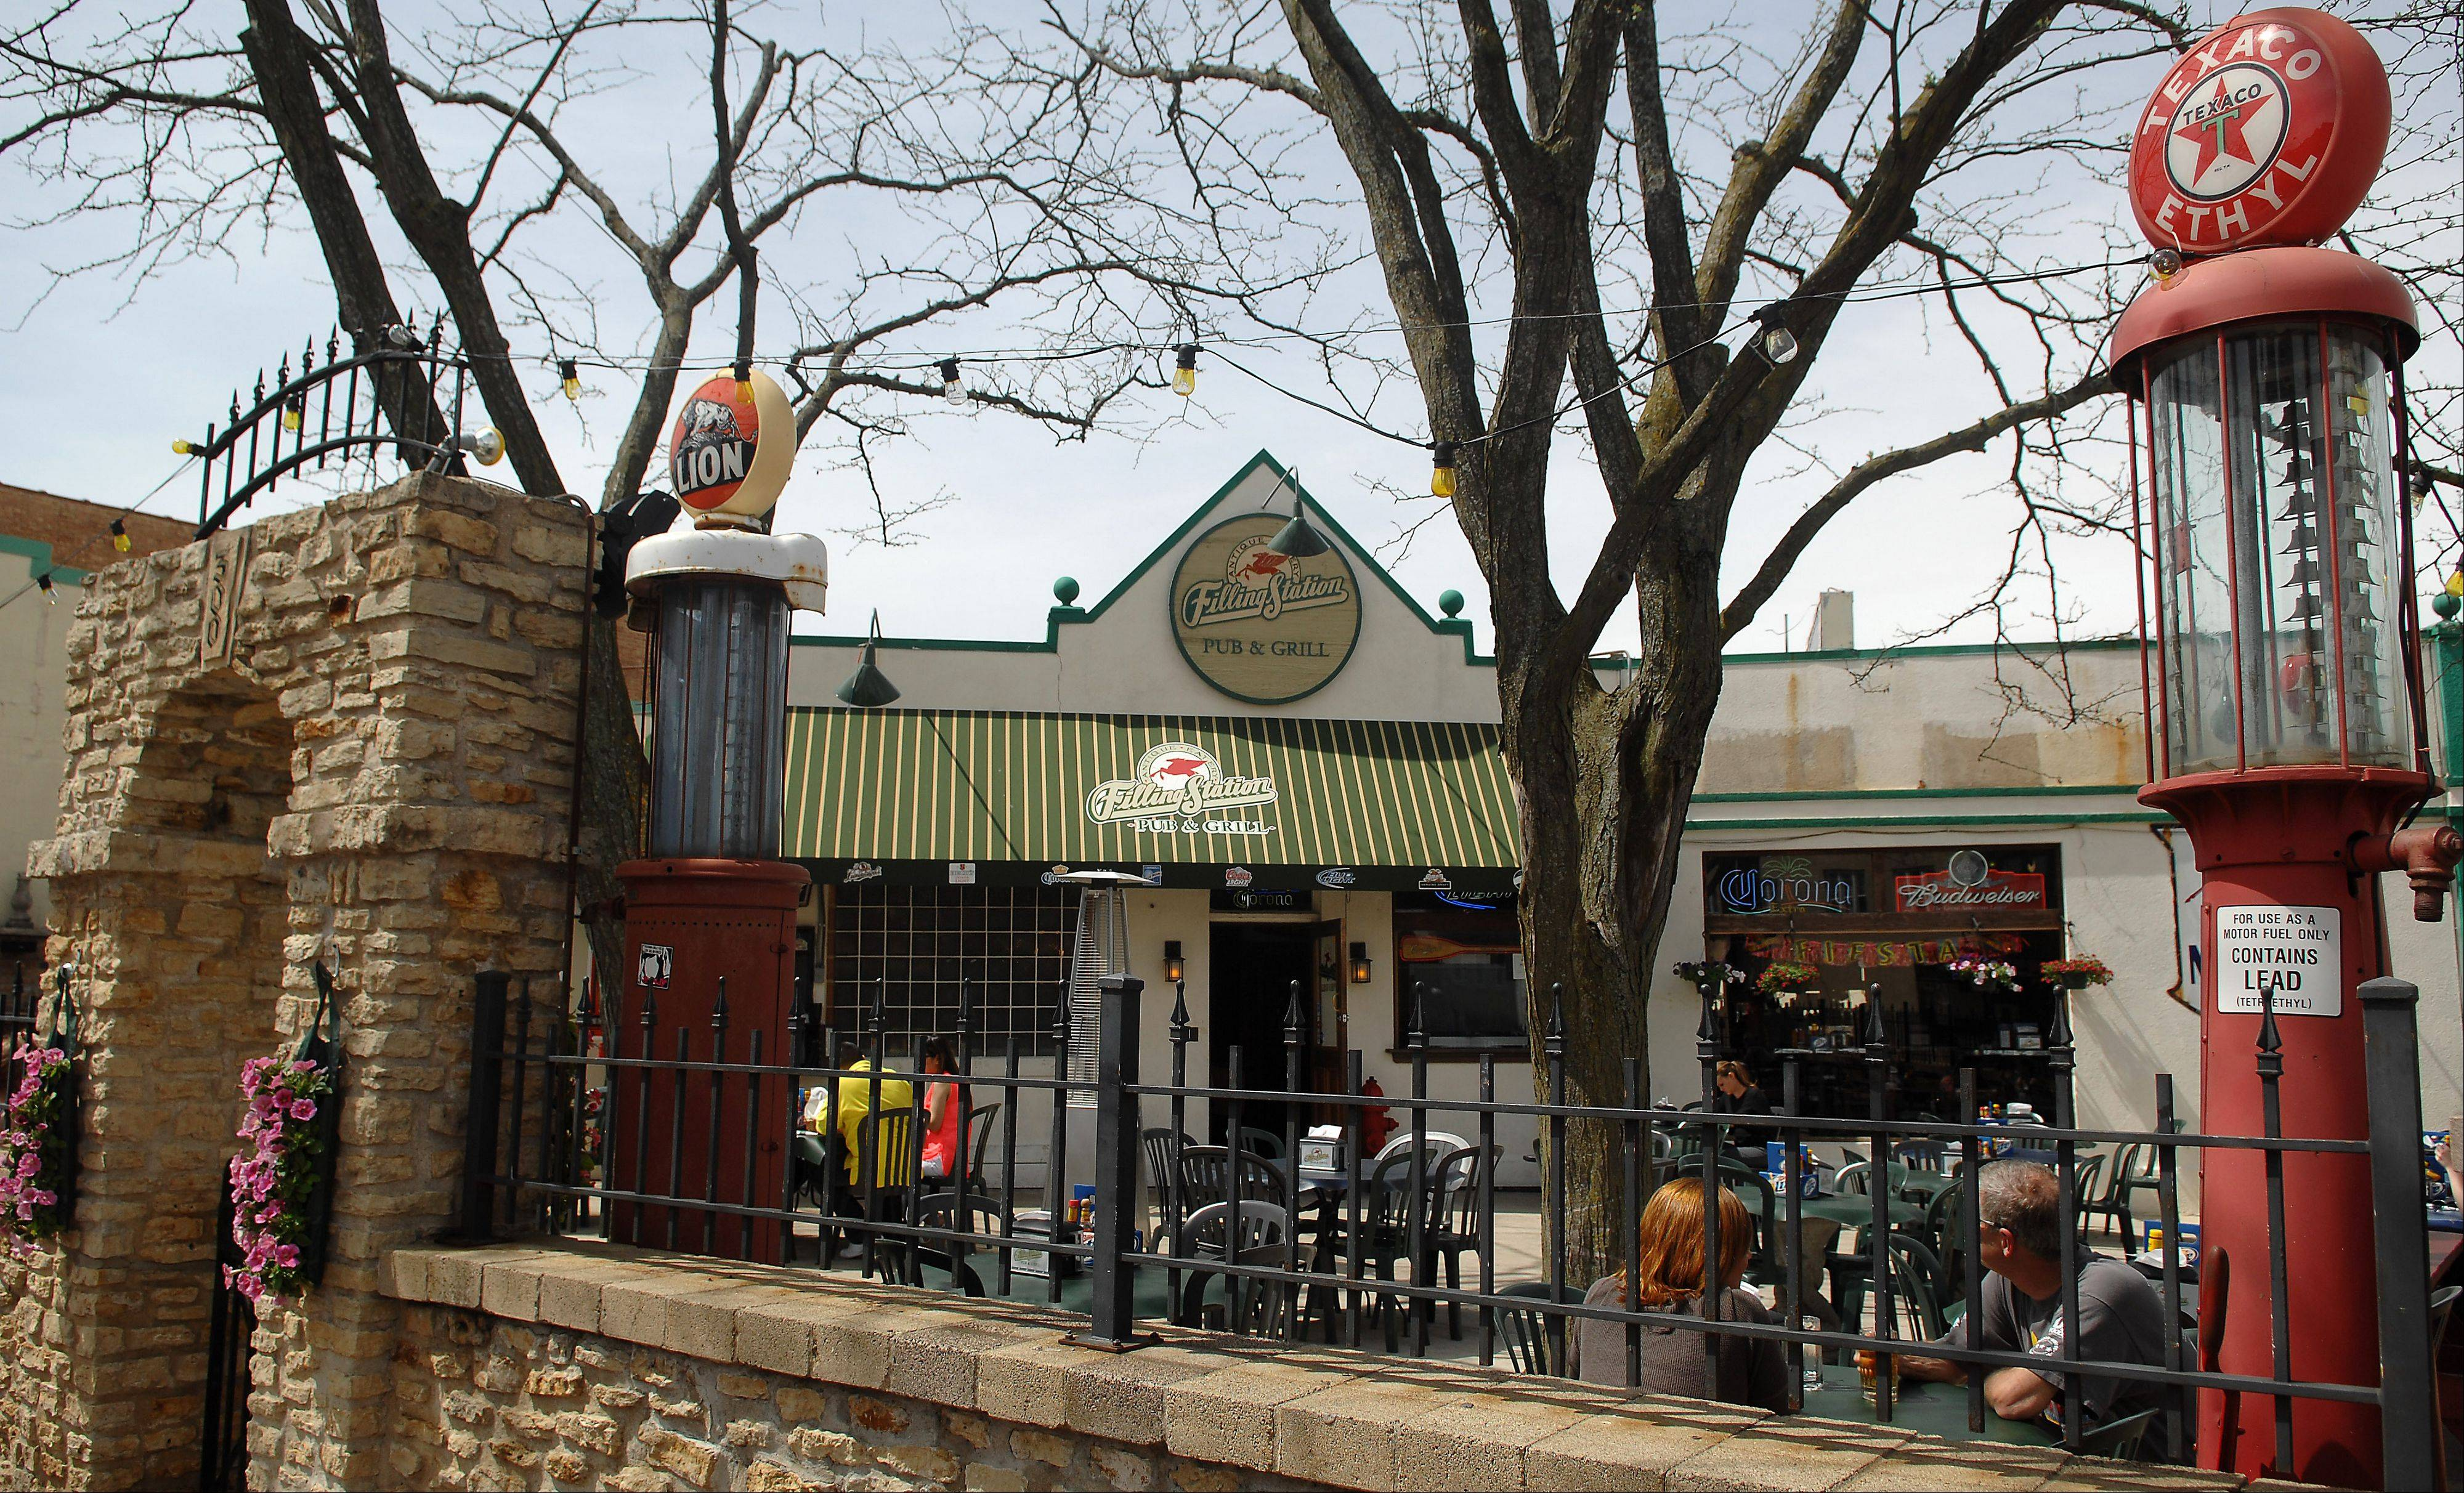 The patio at the Filling Station in downtown St. Charles is a popular refueling spot along the Fox River.